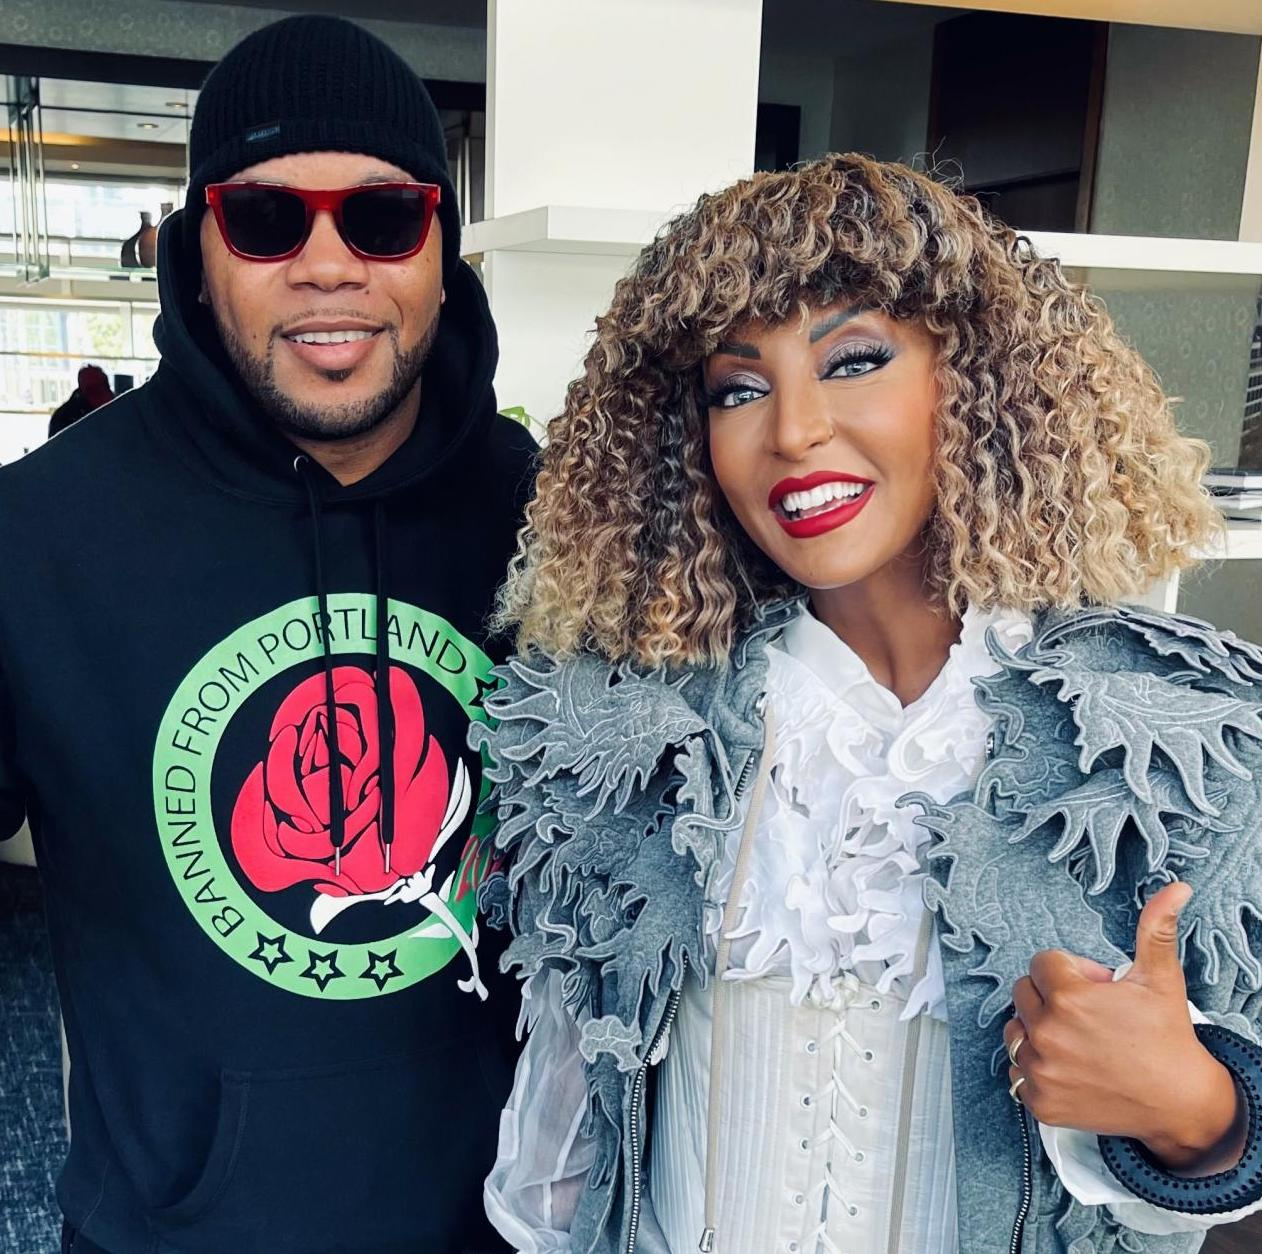 Flo Rida has arrived in Rotterdam